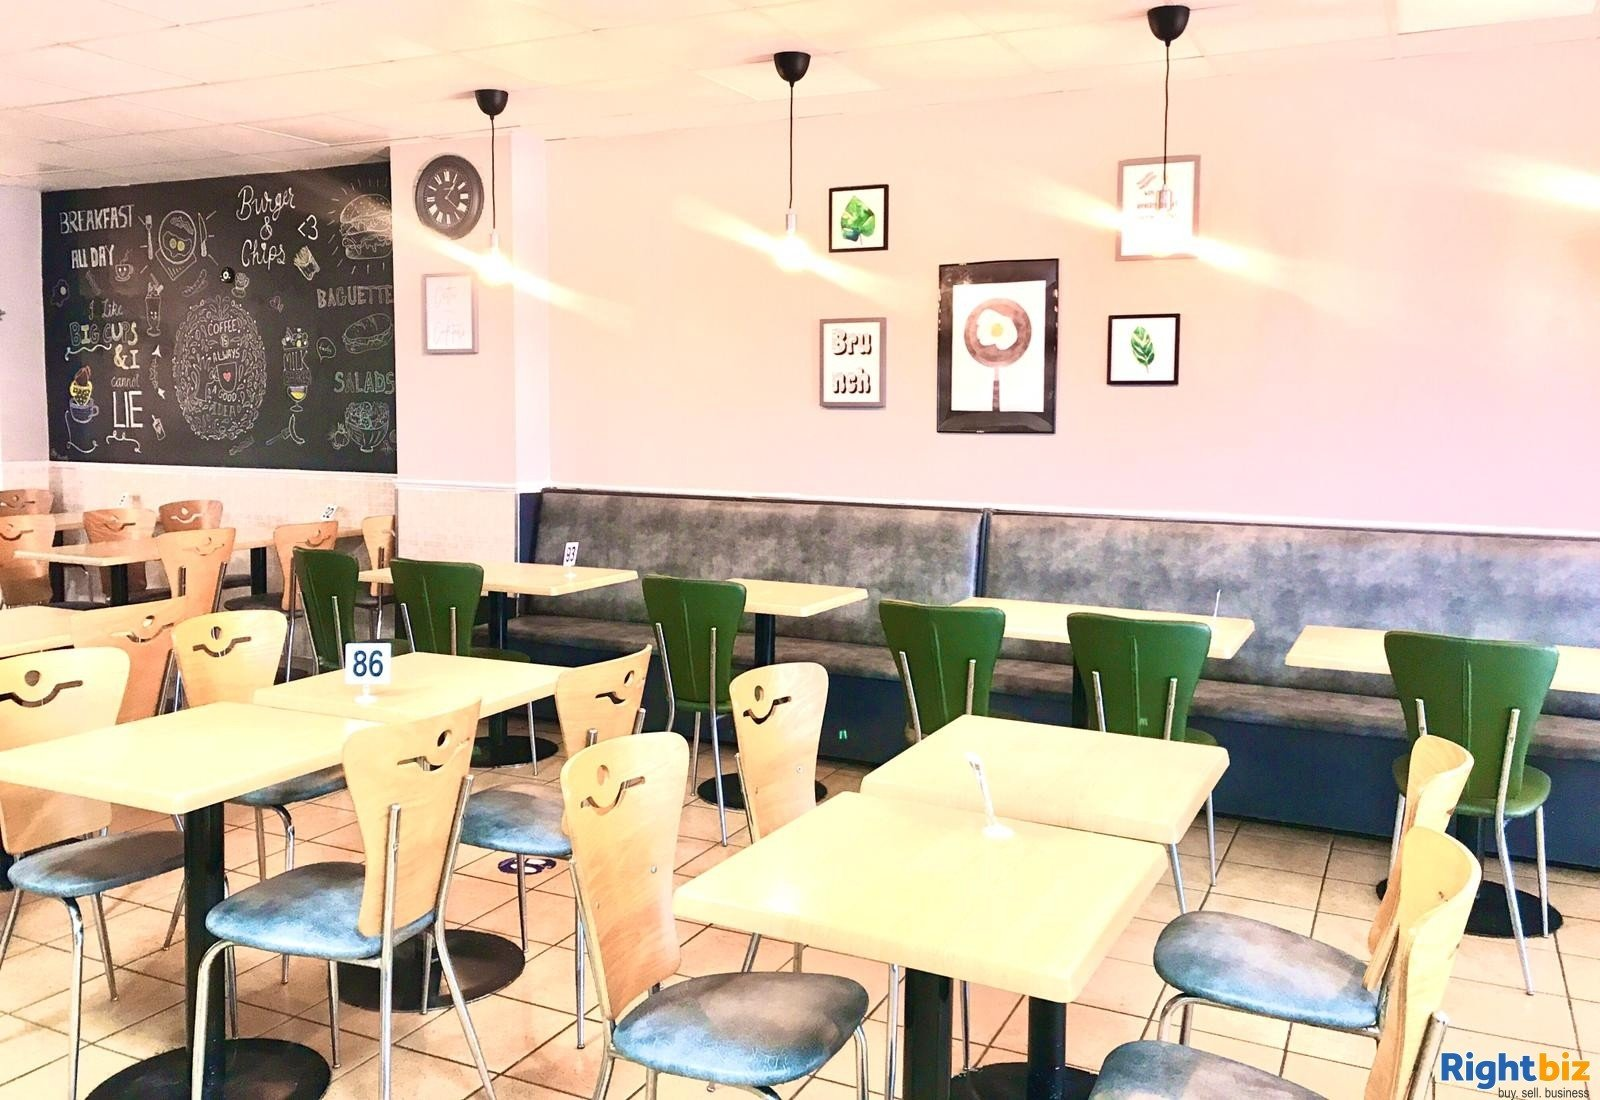 Busy Cafe/Restaurant for sale (120 seats), located on high street, with a large 2 bedroom flat - Image 5